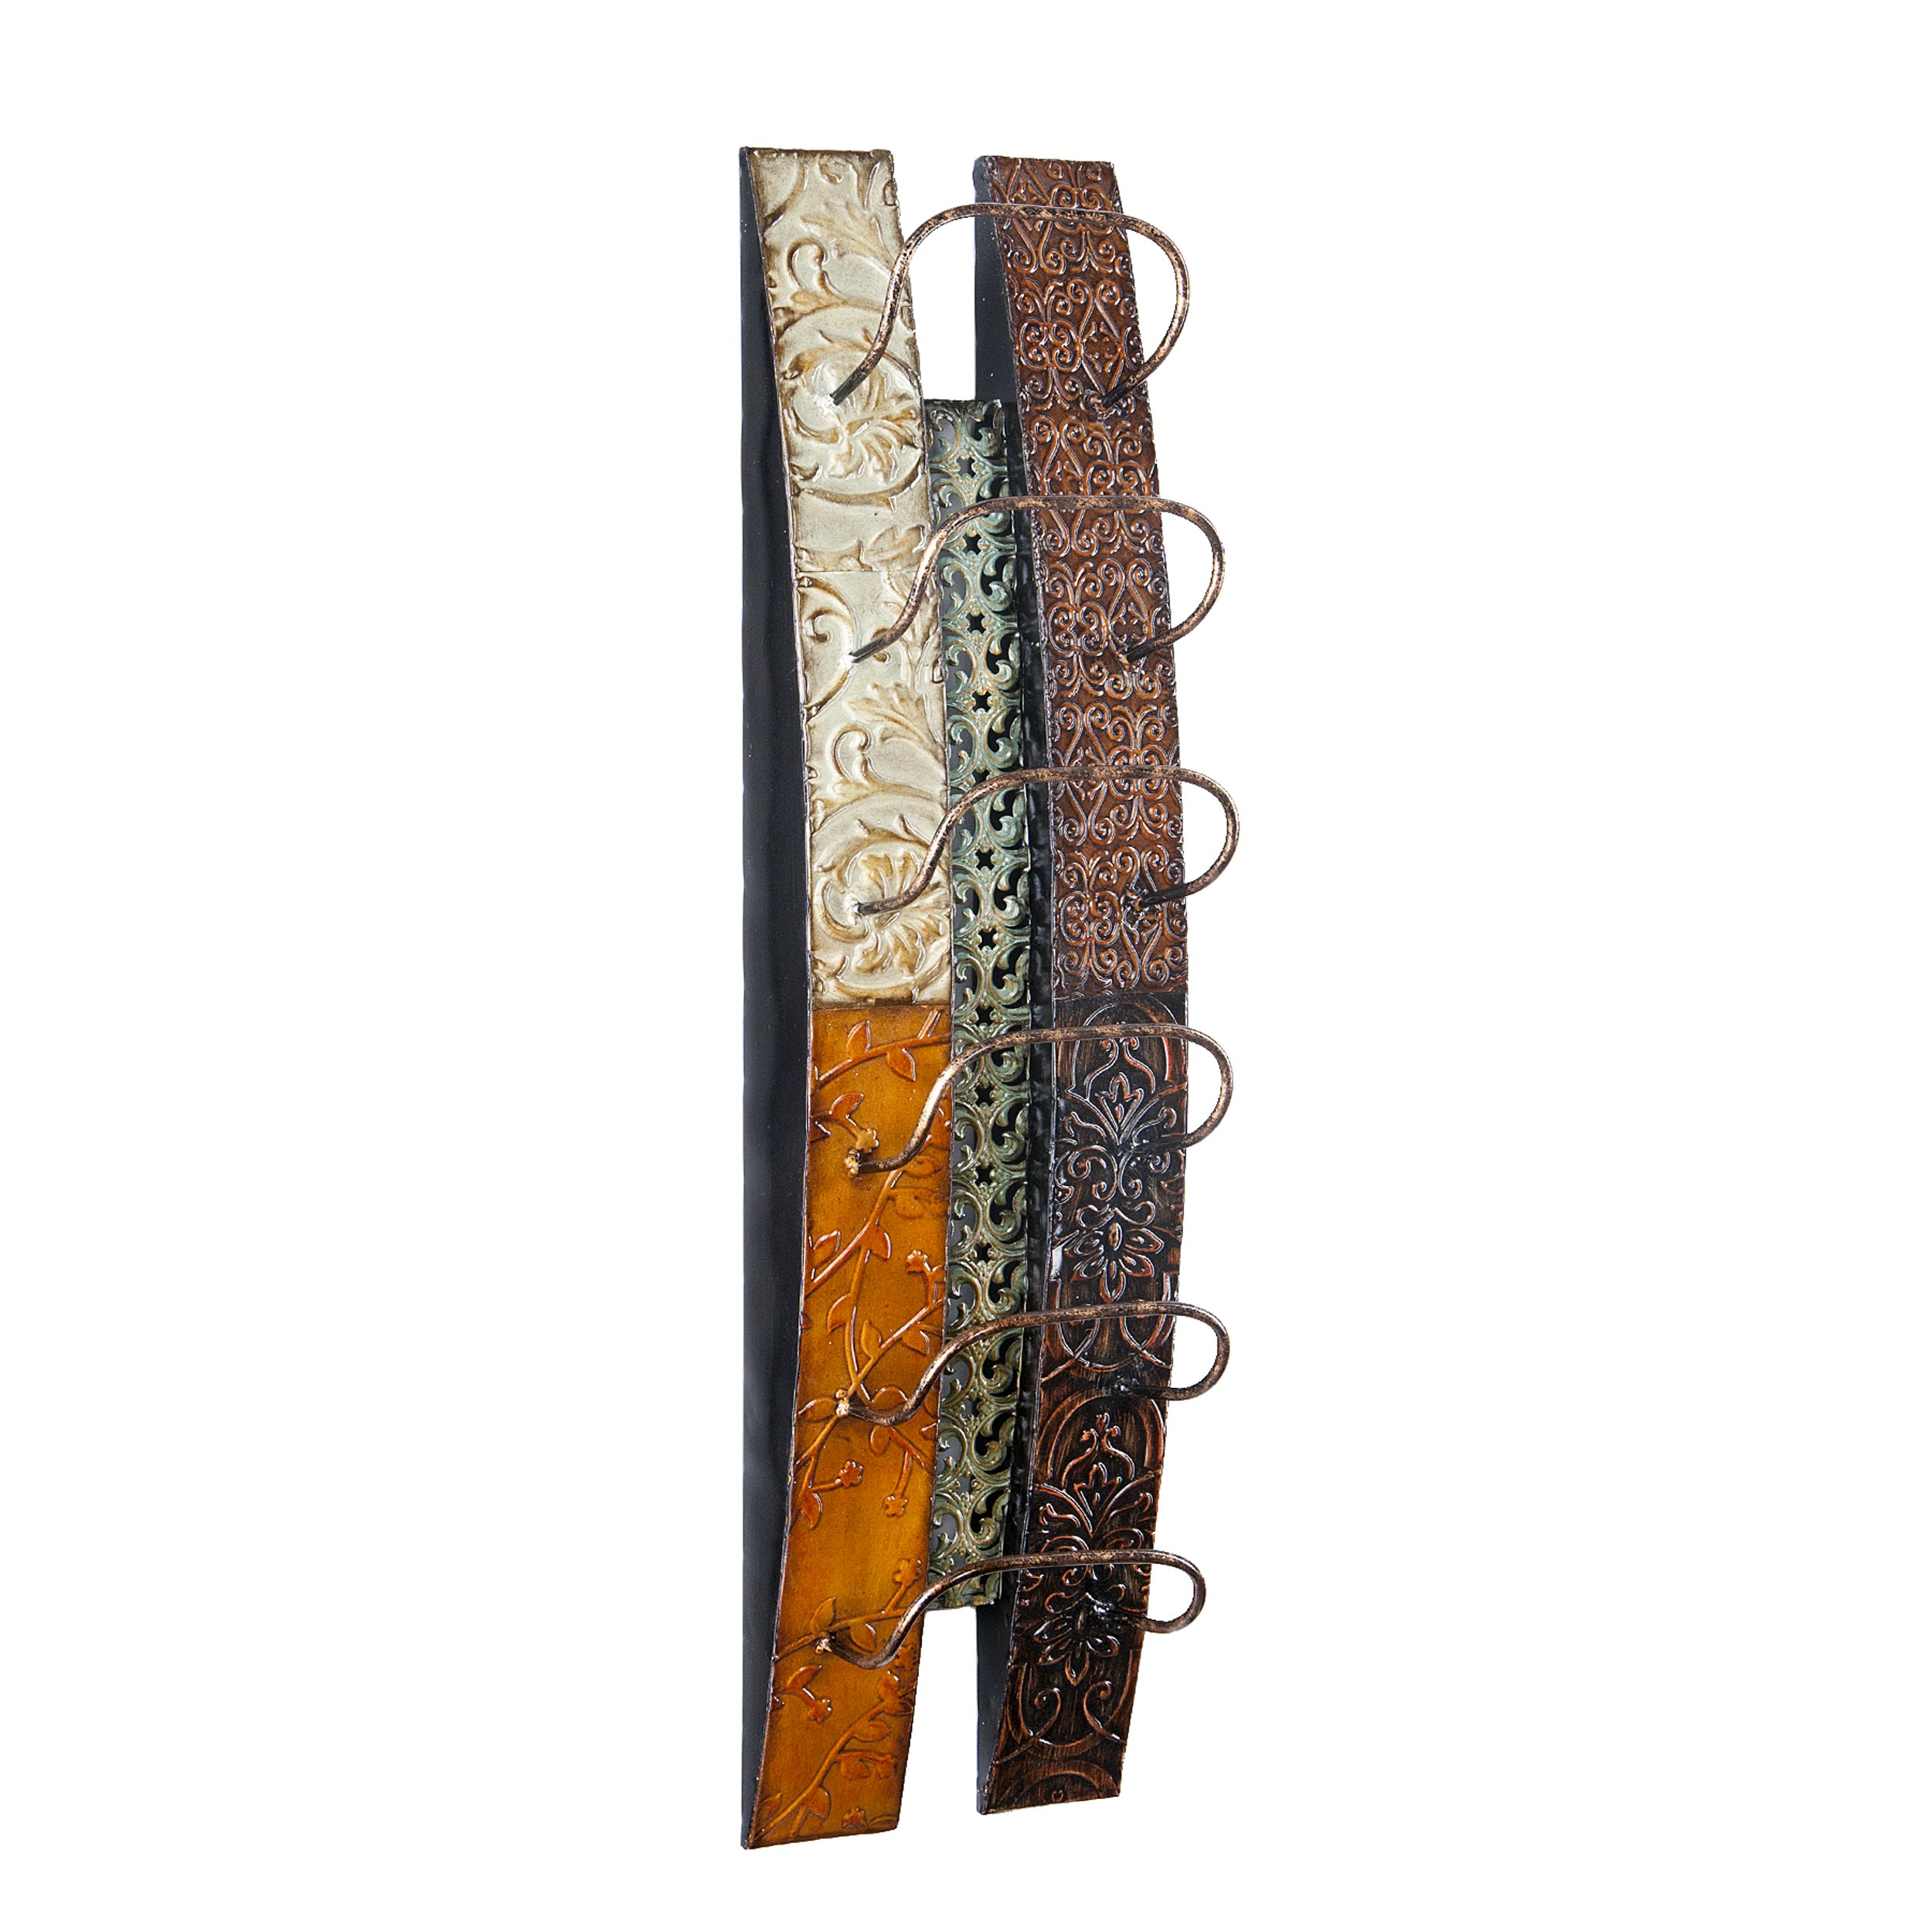 Southern Enterprises Adriano Wine Bottle Wall Mount Rack Storage - Holds 6 Bottles - All Metal Construction by Southern Enterprises